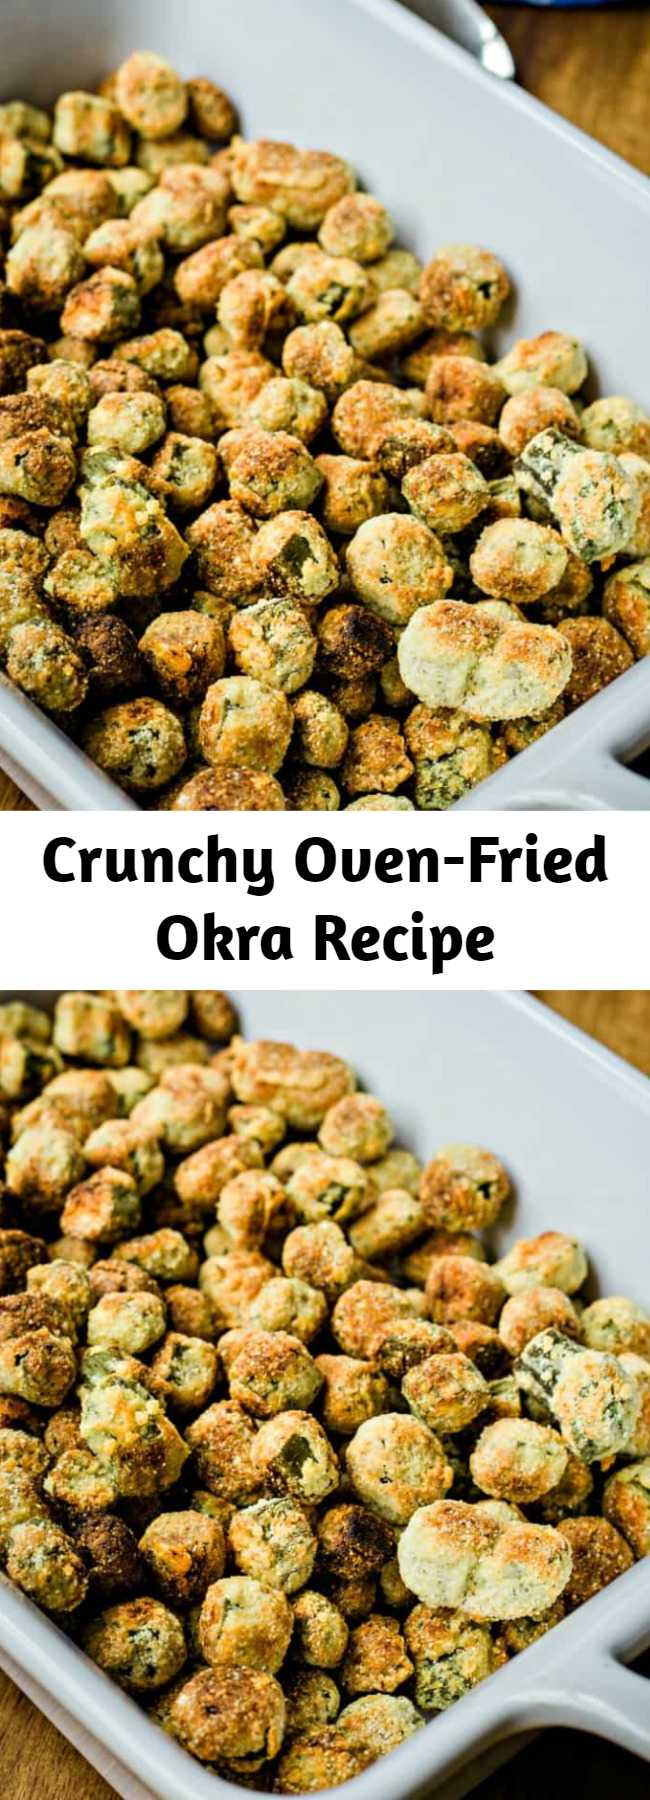 """Crunchy Oven-Fried Okra Recipe - Crunchy Oven-Fried Okra — this recipe is a bit healthier and easier to prepare. Make this delicious and Crunchy Oven-Fried Okra just one time and you may never go back to cooking fried okra on the stove! Plus, this """"fried"""" okra recipe uses a fraction of the oil that you would need when pan frying which is an added health benefit!"""